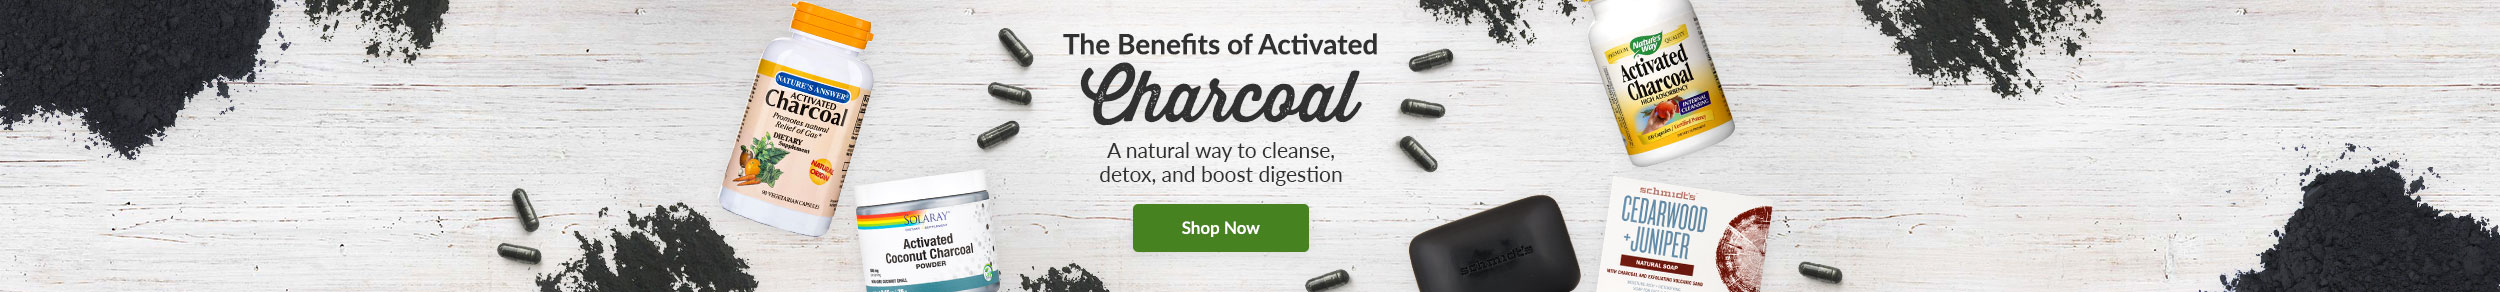 https://i3.pureformulas.net/images/static/Generic-benefits-Activated-Charcoal_Beauty-3_092118.jpg